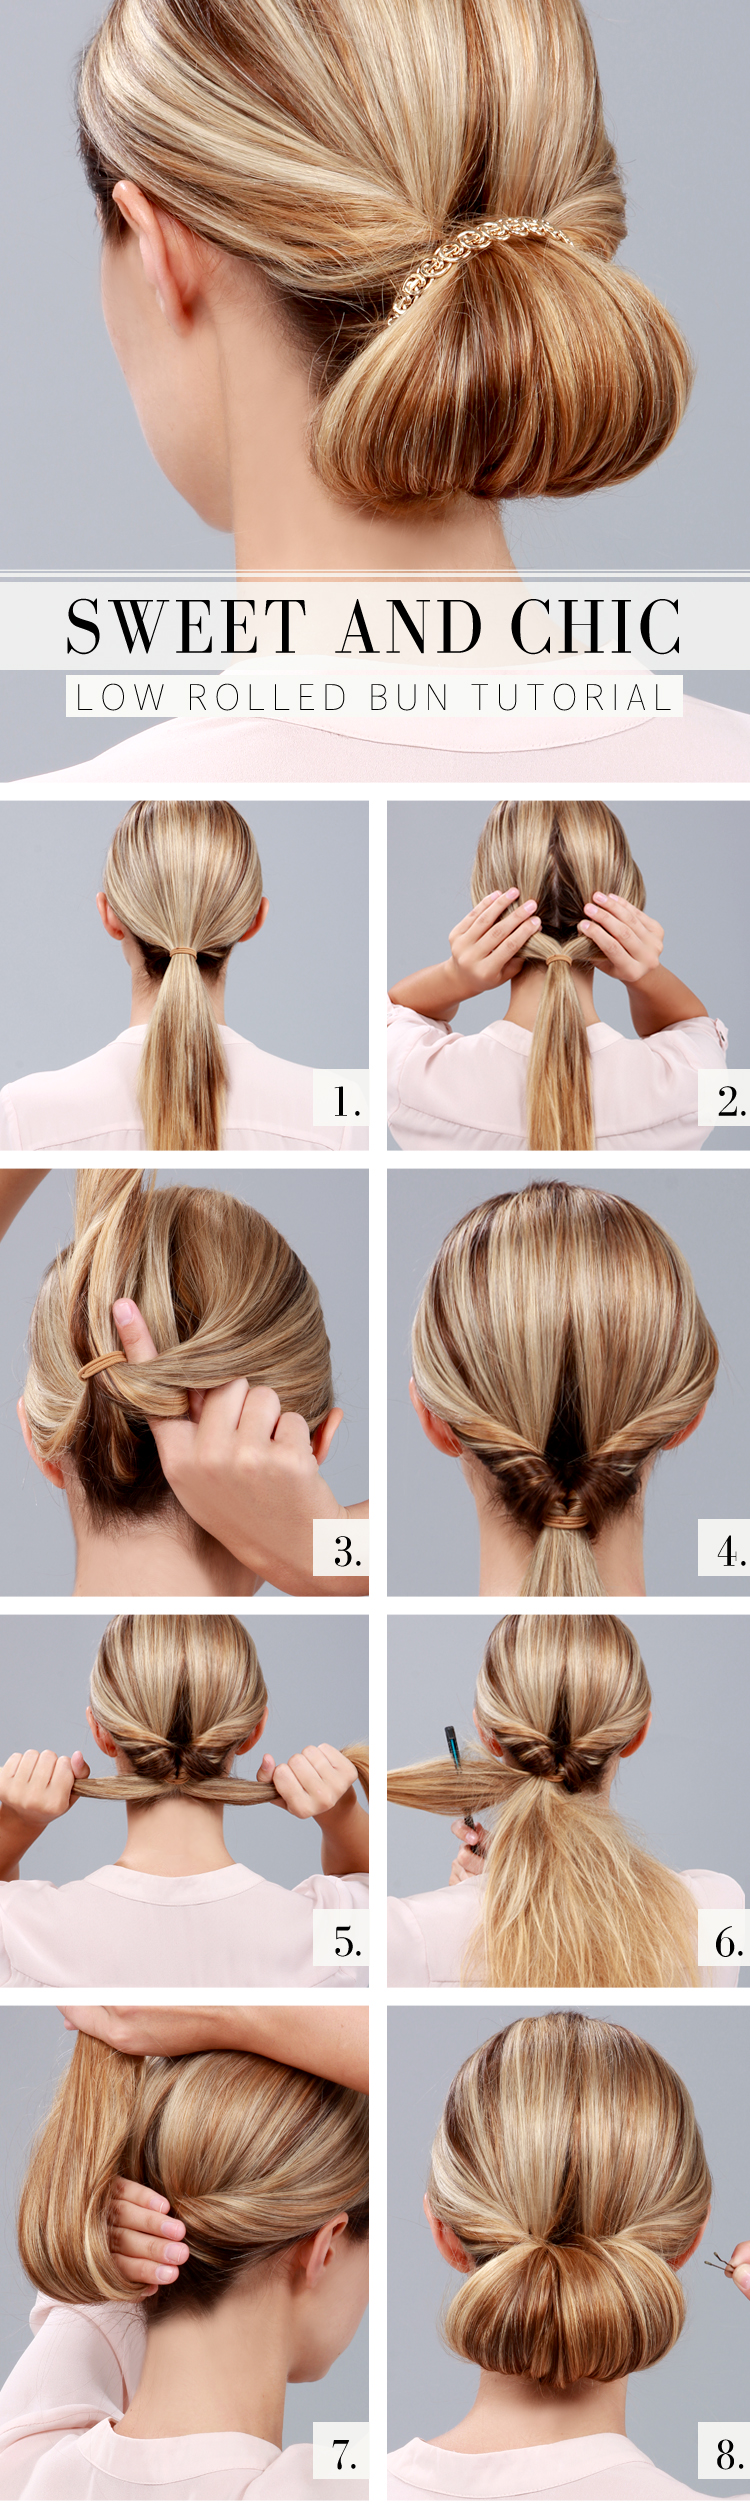 hairstyle15